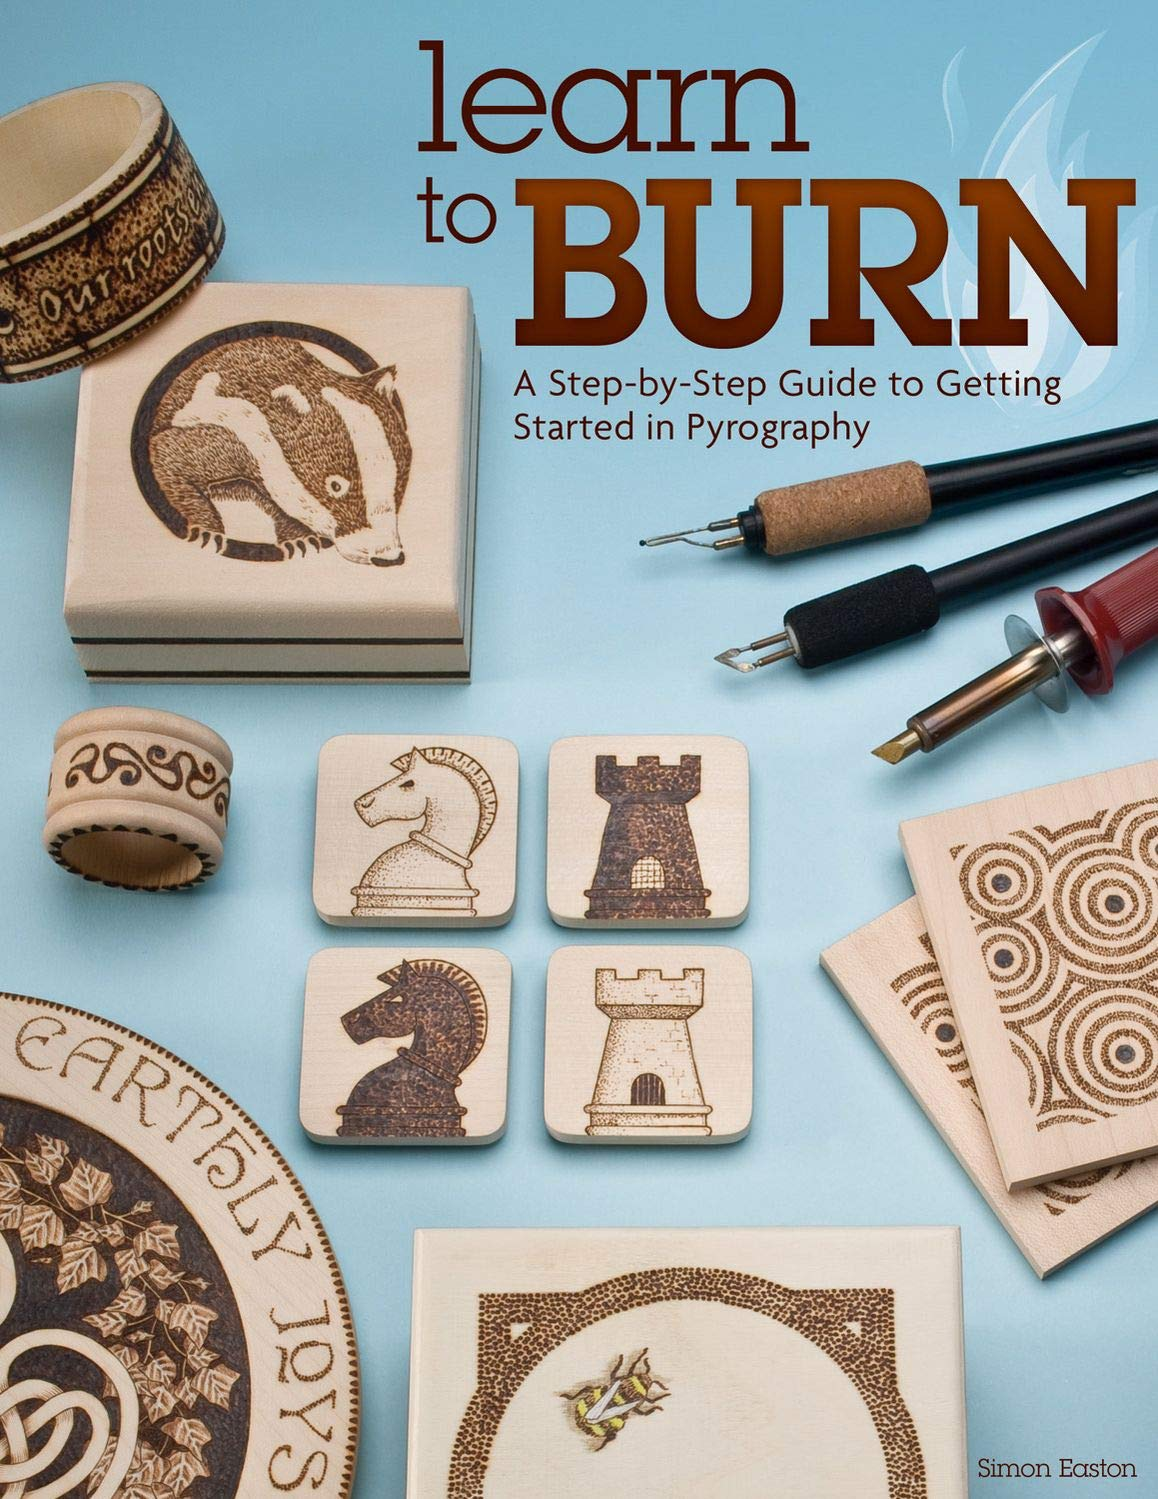 Download Learn to Burn: A Step-by-Step Guide to Getting Started in Pyrography (Fox Chapel Publishing) Easily Create Beautiful Art & Gifts with 14 Step-by-Step Projects, How-to Photos, and 50 Bonus Patterns pdf epub